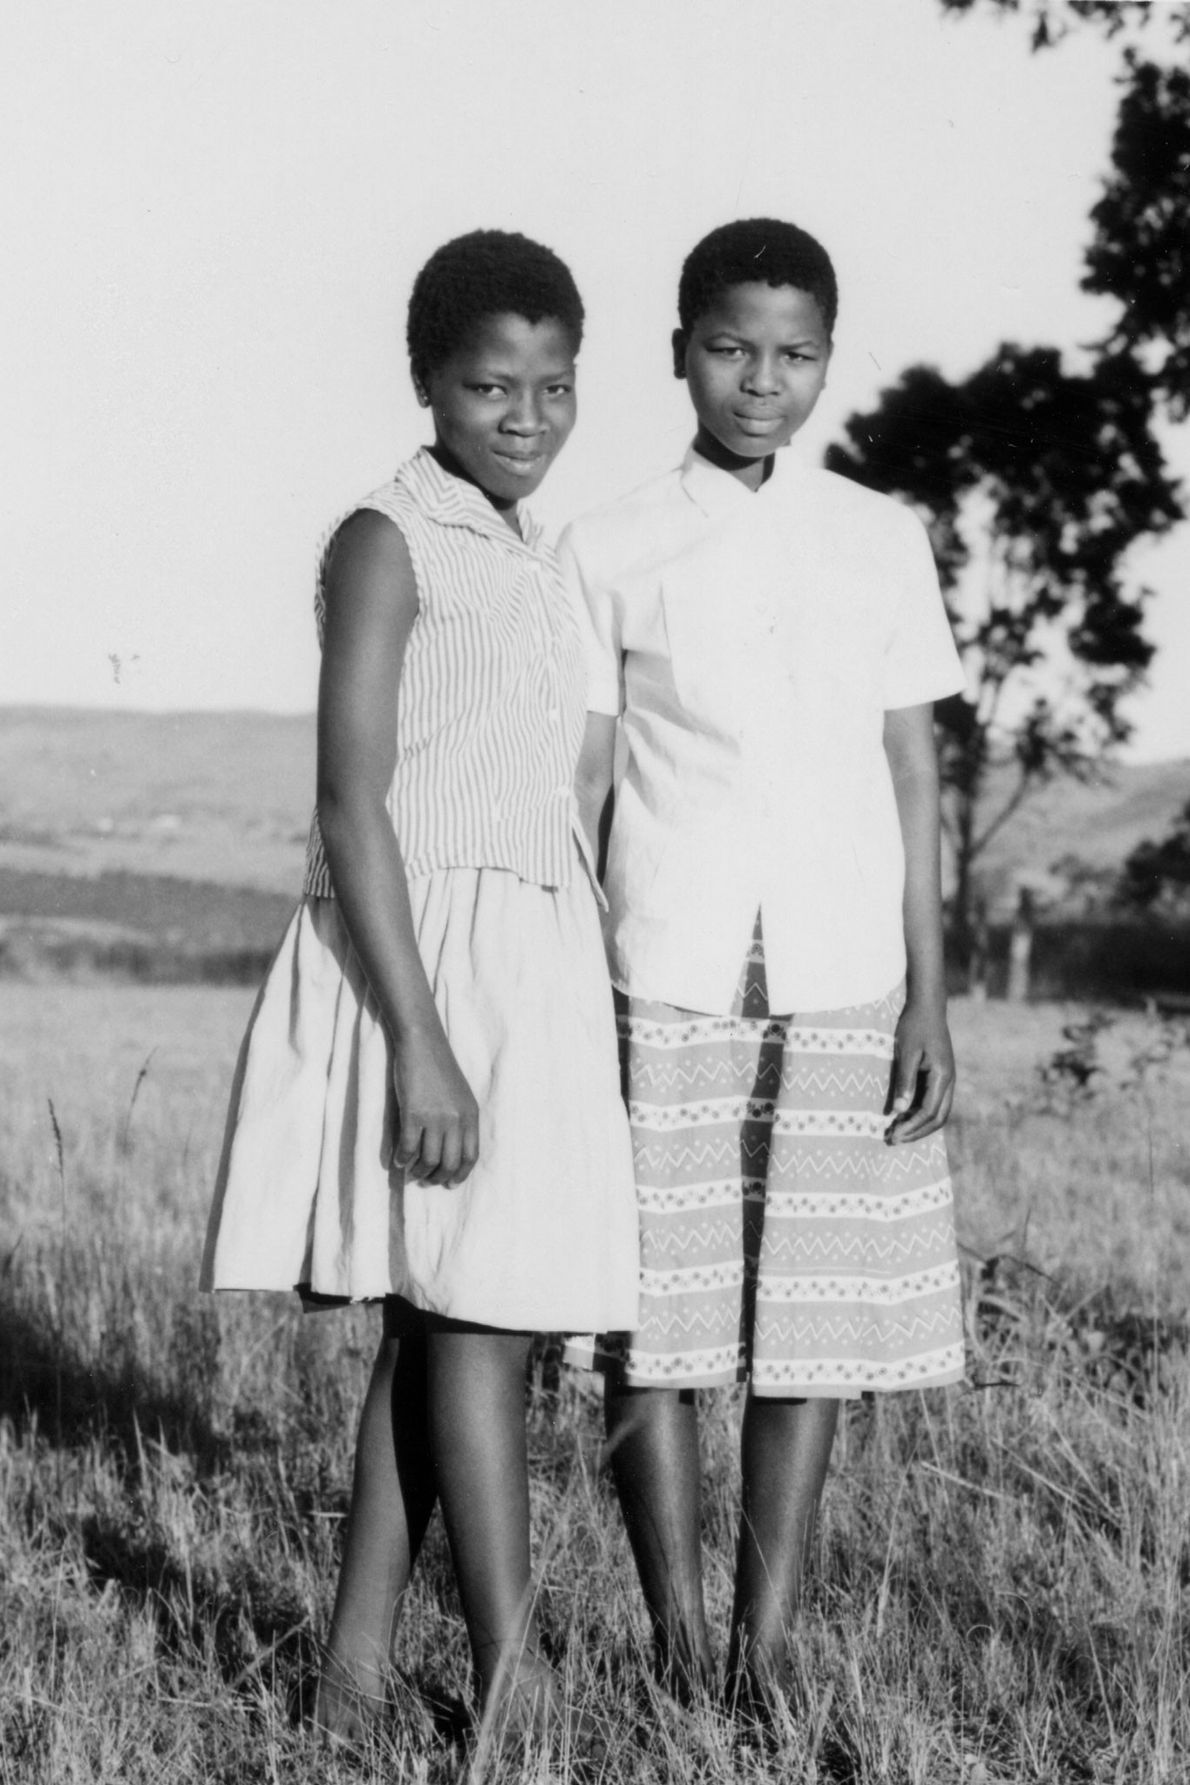 Nftombi Tfwala (right) and a daughter of King Sobhuza II of Eswantini, one of his some ...